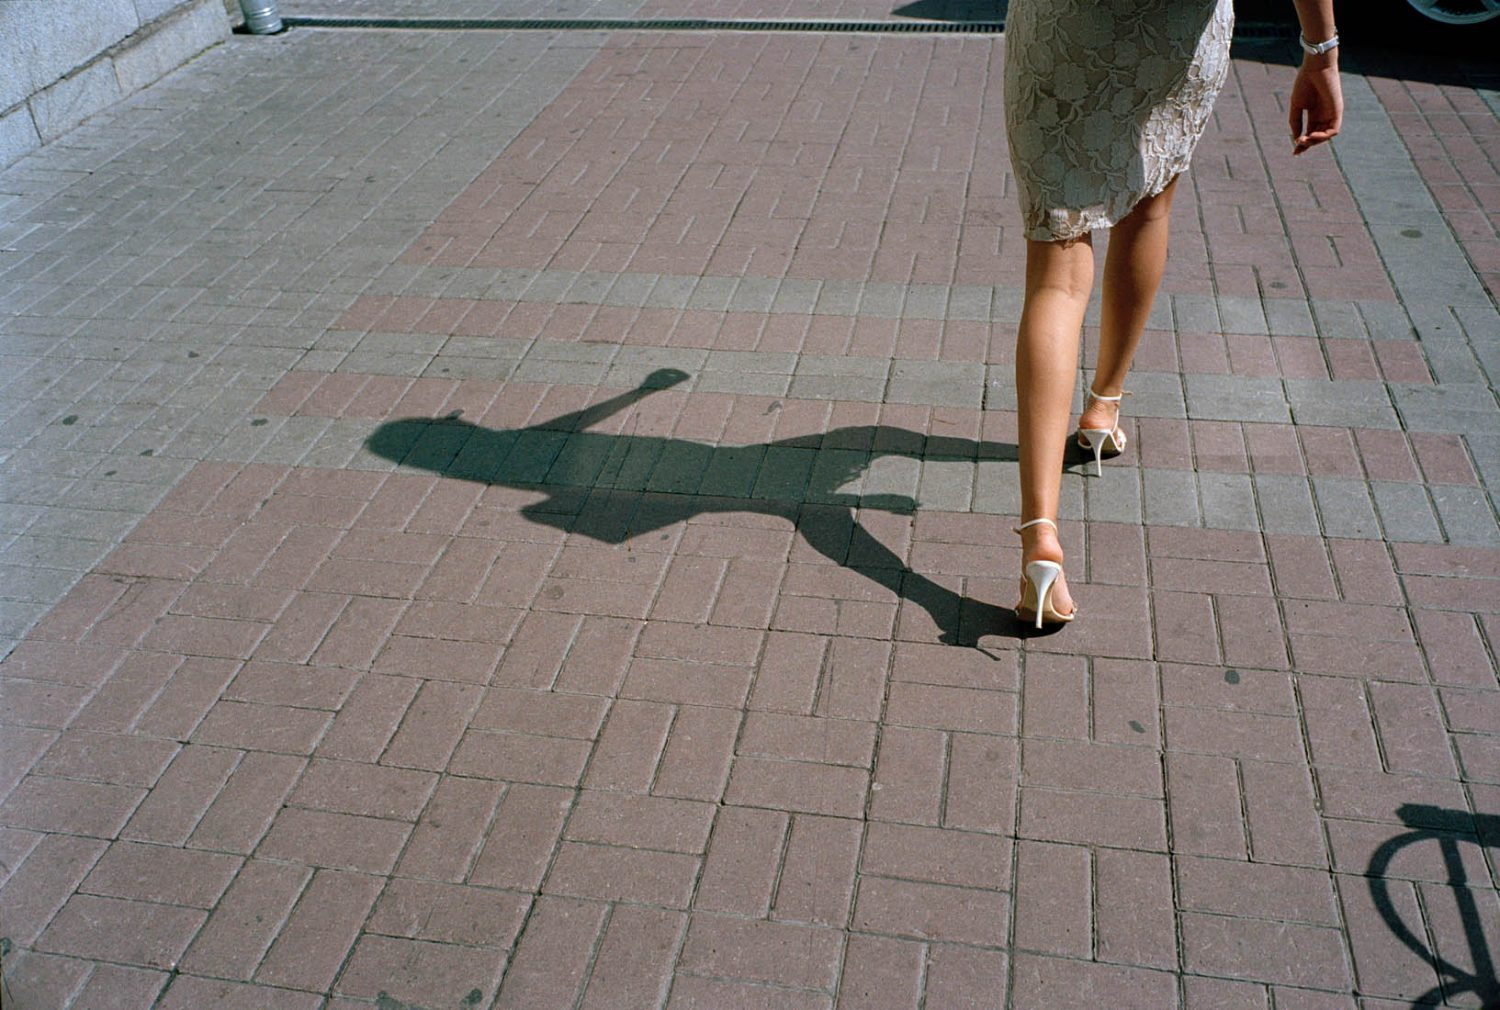 Oekraïne, Donetsk, 31-08-2006 Beautiful en elegant woman legs on high heels in the streets of Donetsk. PHOTO AND COPYRIGHT ROGER CREMERS